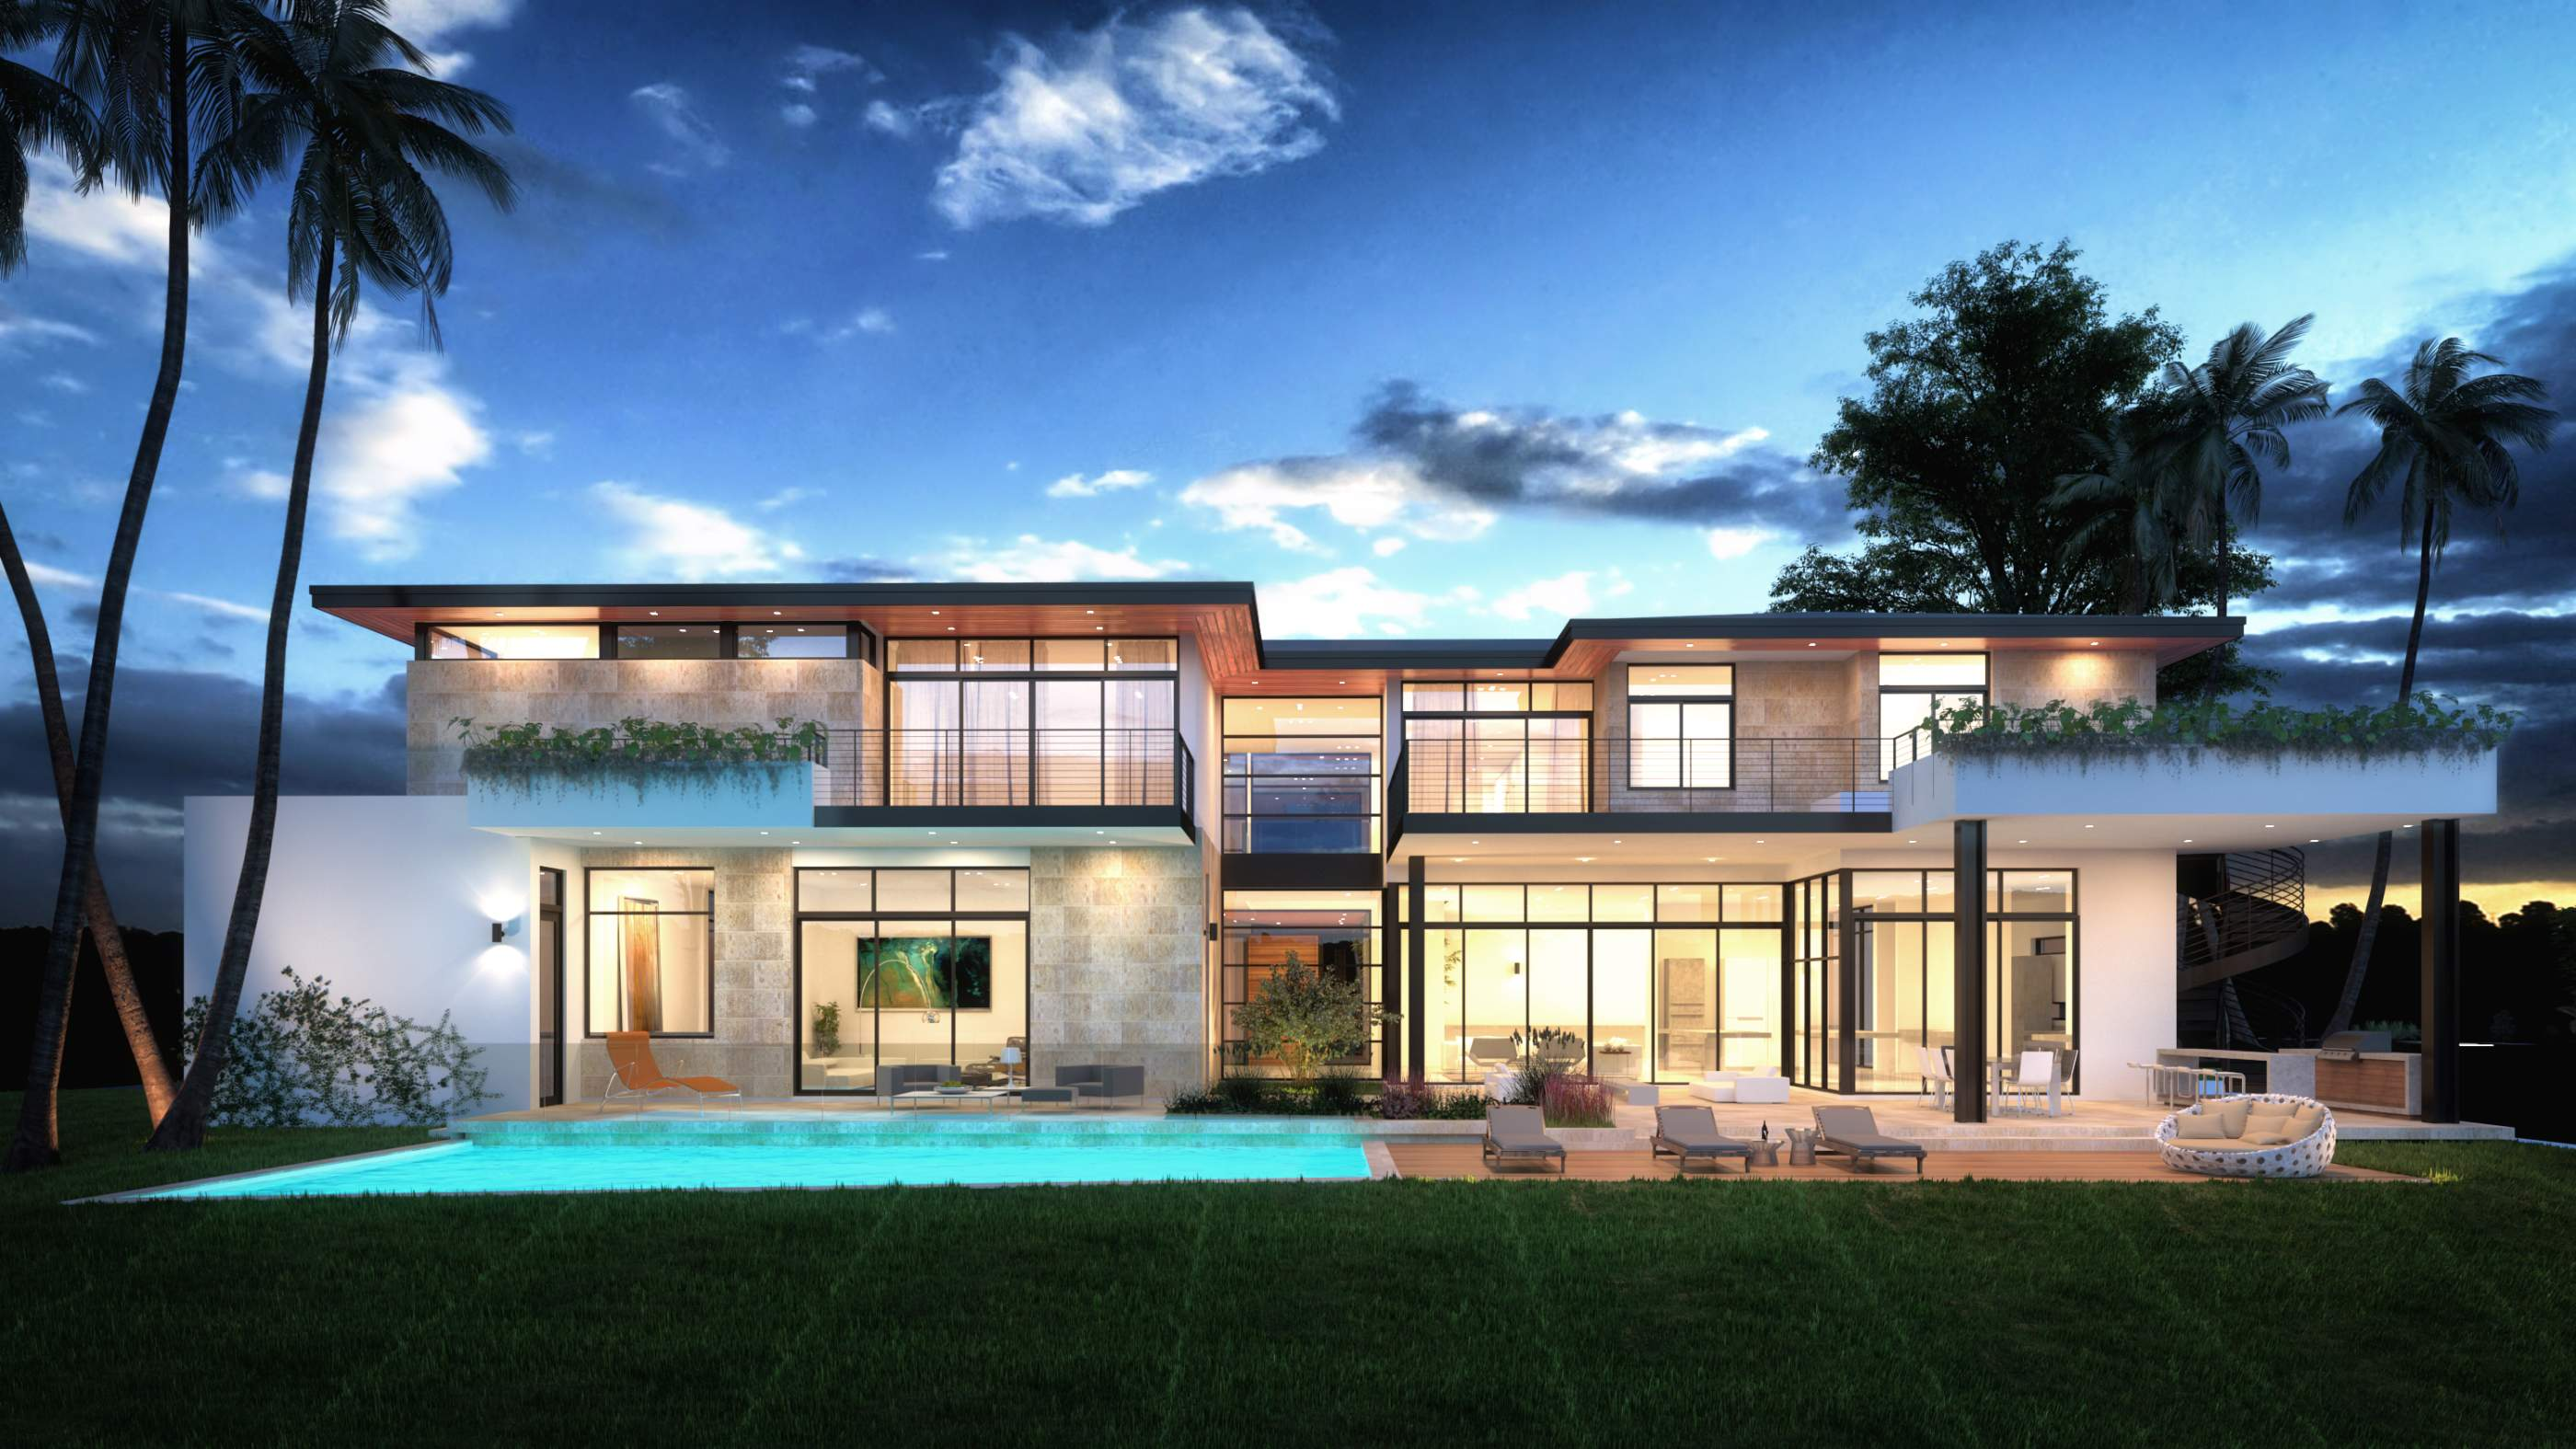 Exterior View architecture project 197 Enchanted Lake Miami, Florida